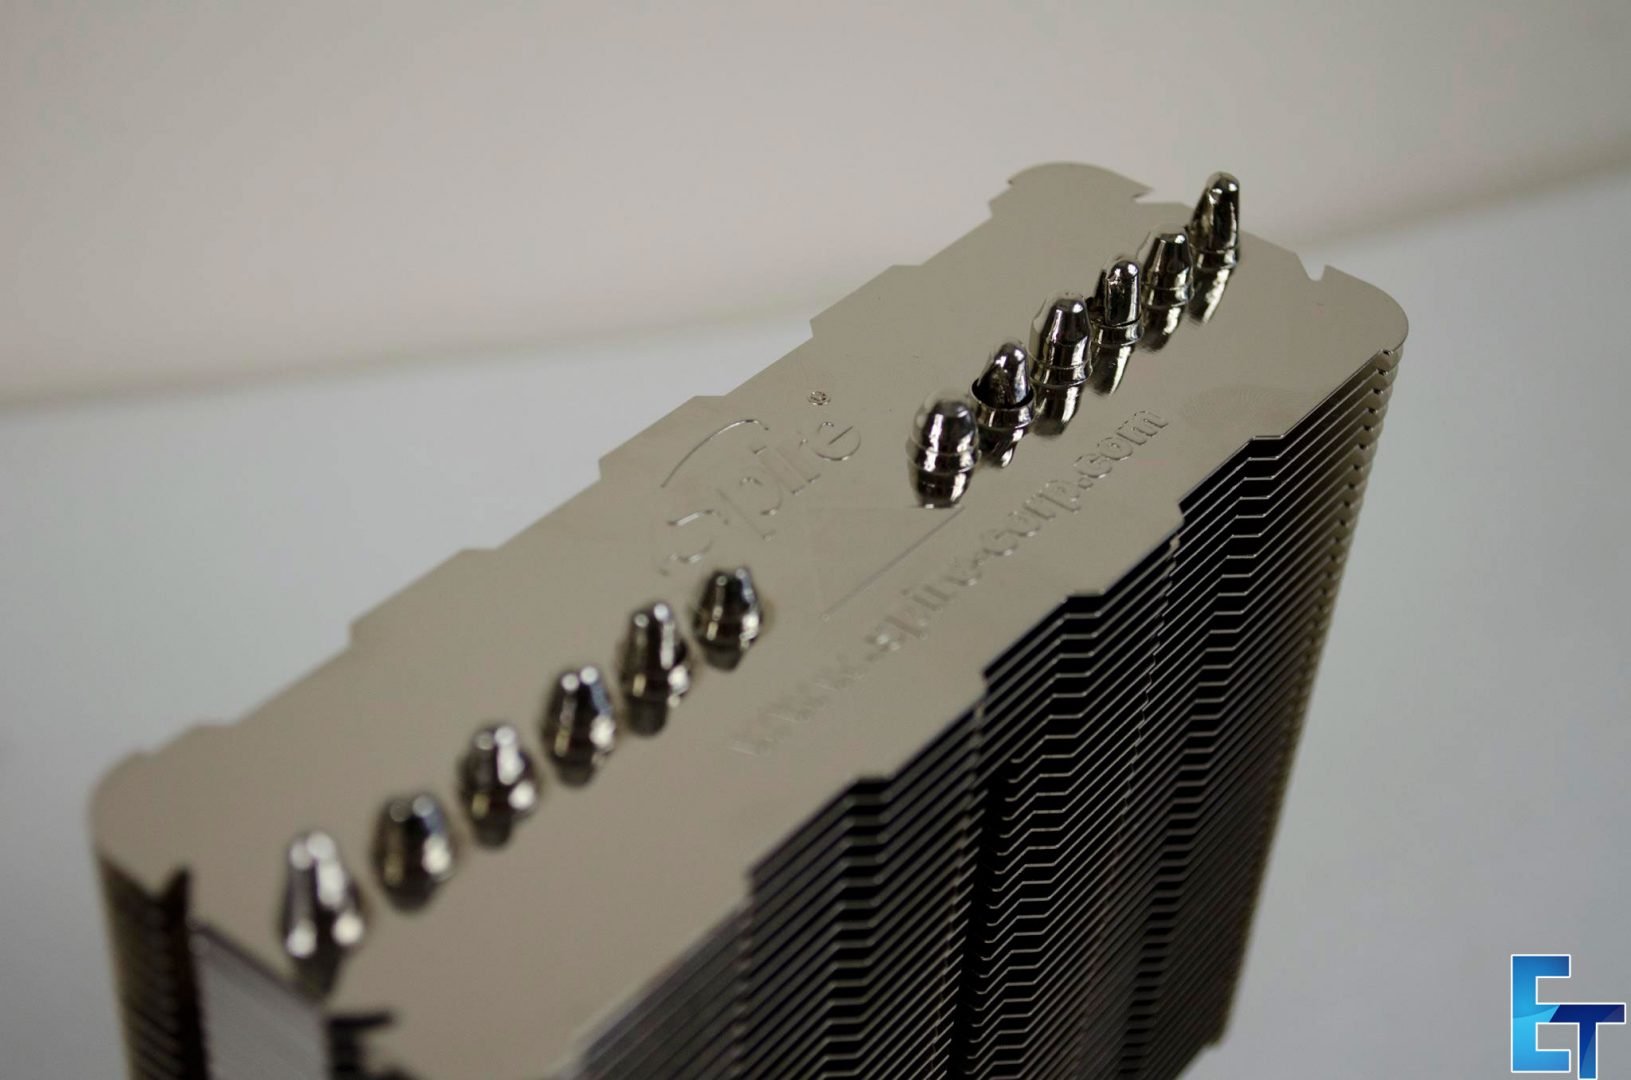 Spire-CoolGate-2-CPU-cooler-Review_4